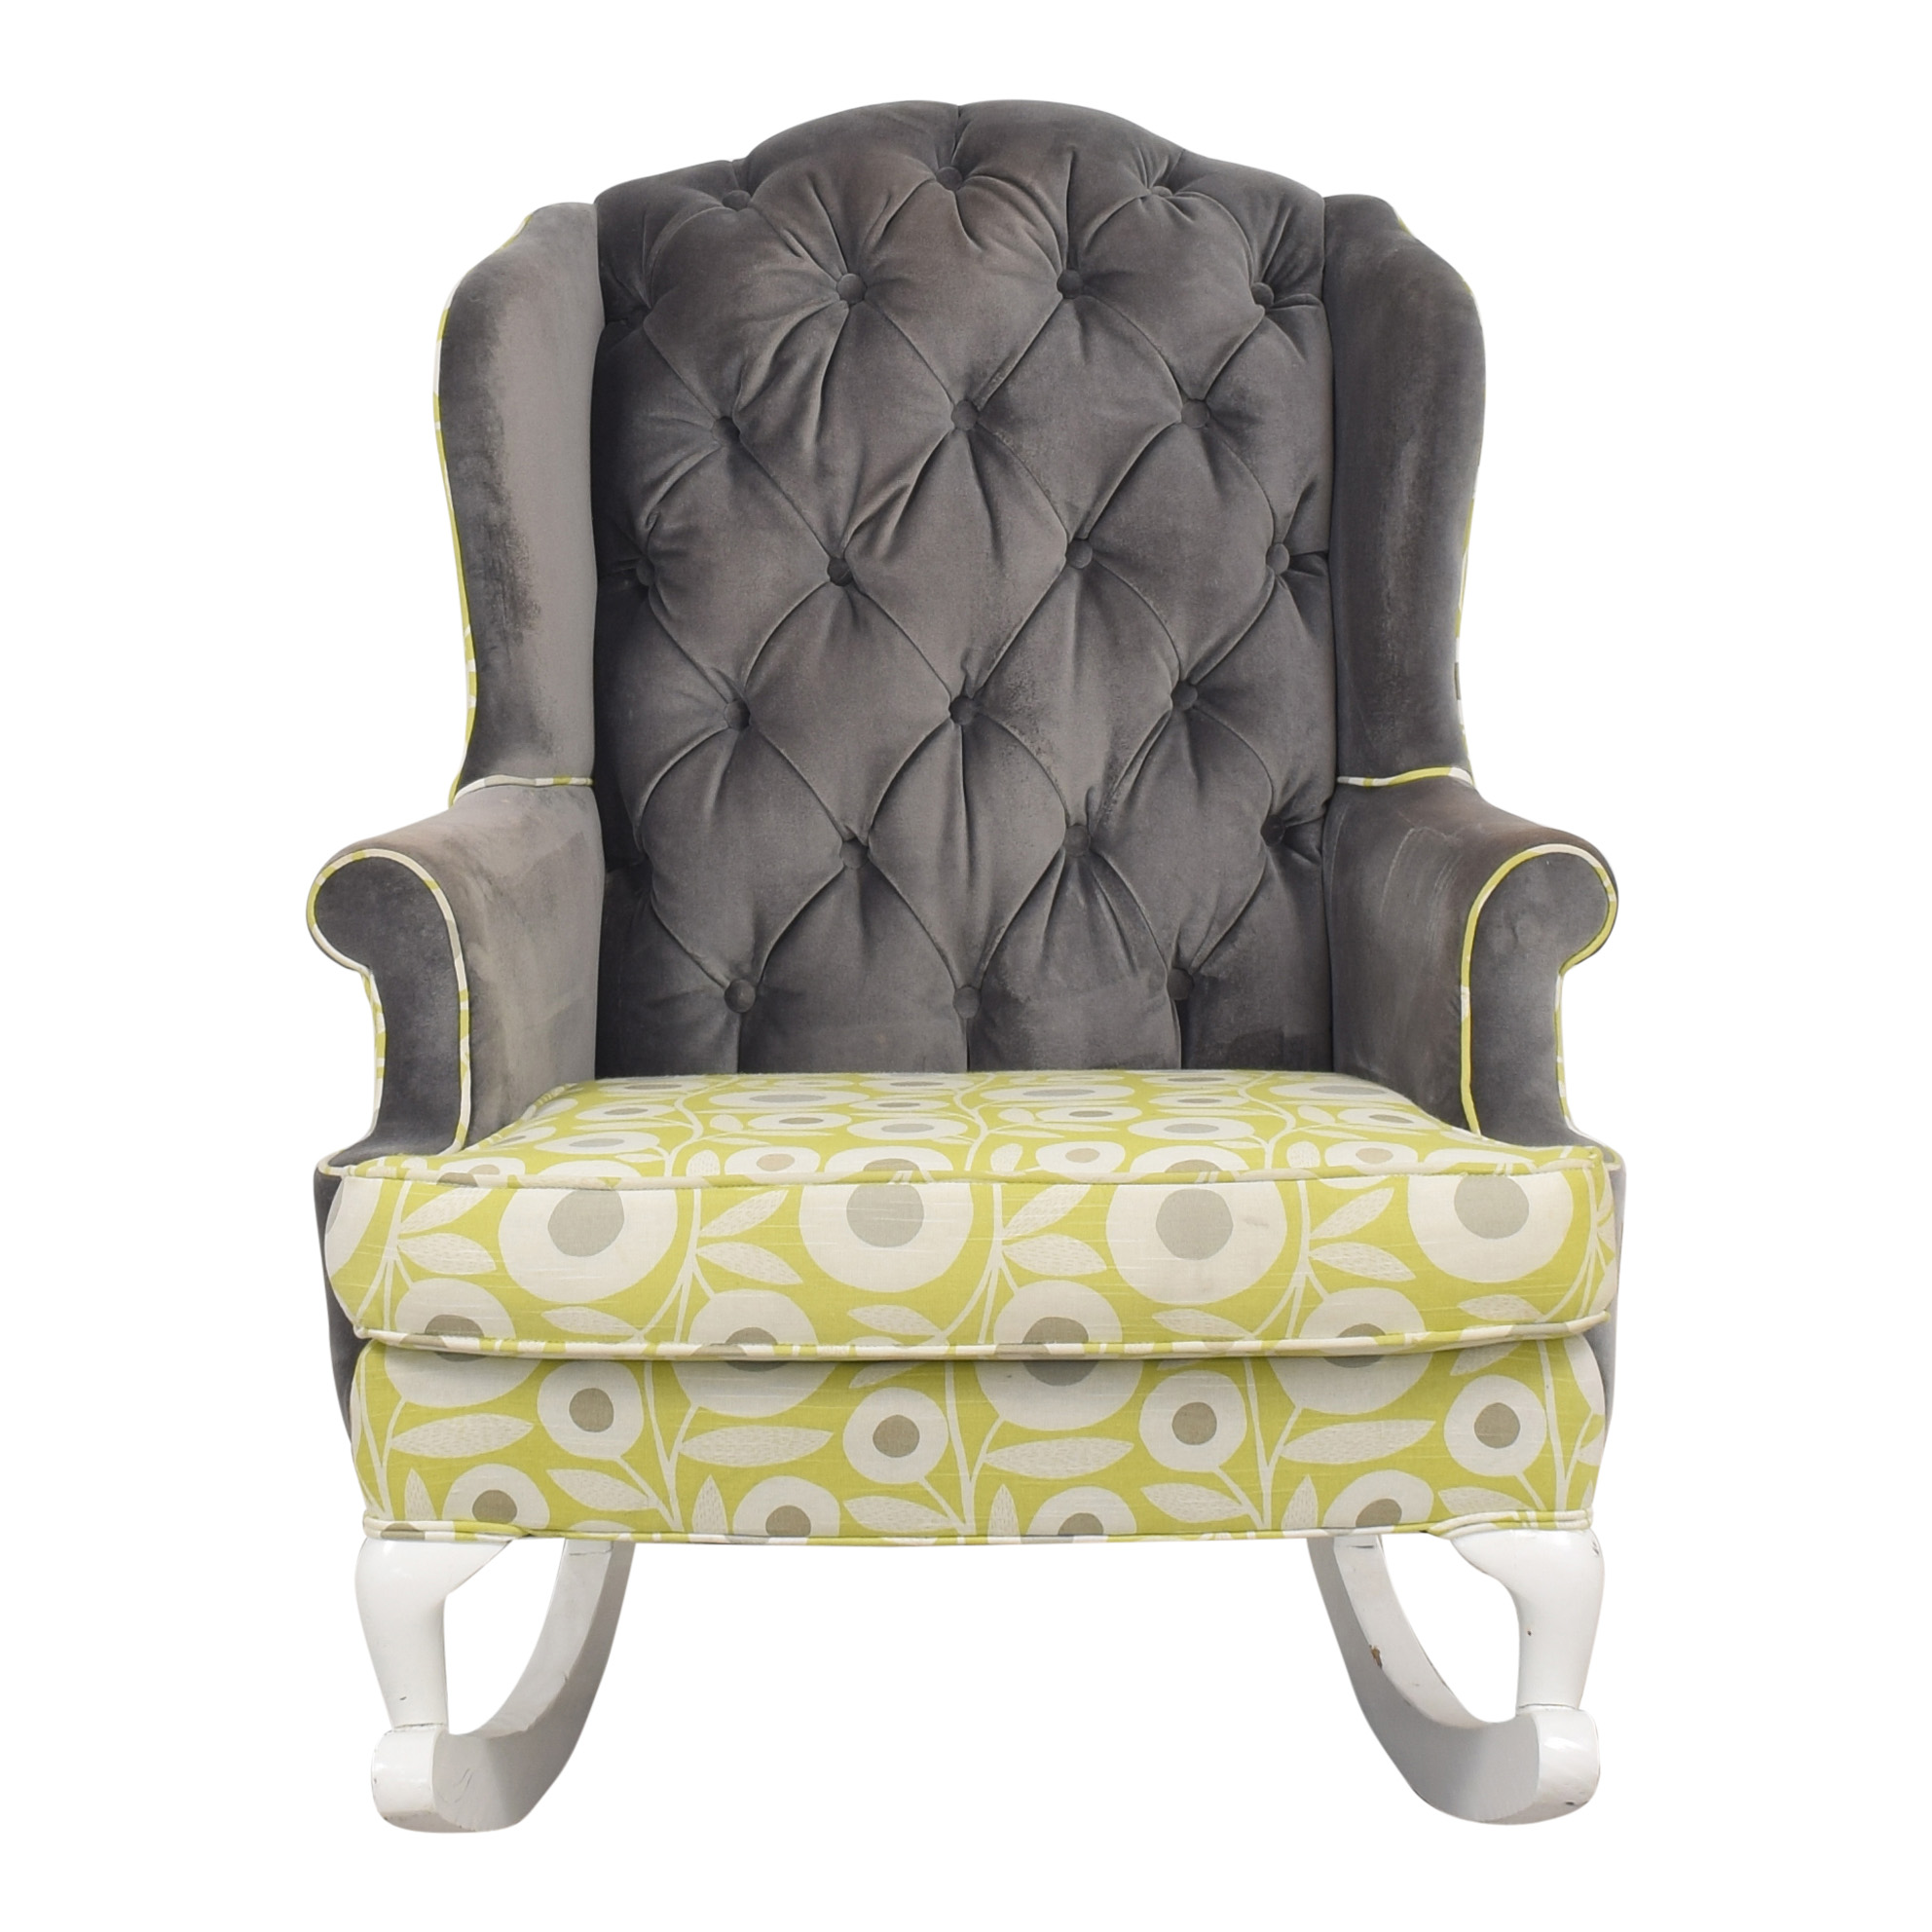 Rocker Refined Rocker Refined Custom Wingback Rocking Chair discount